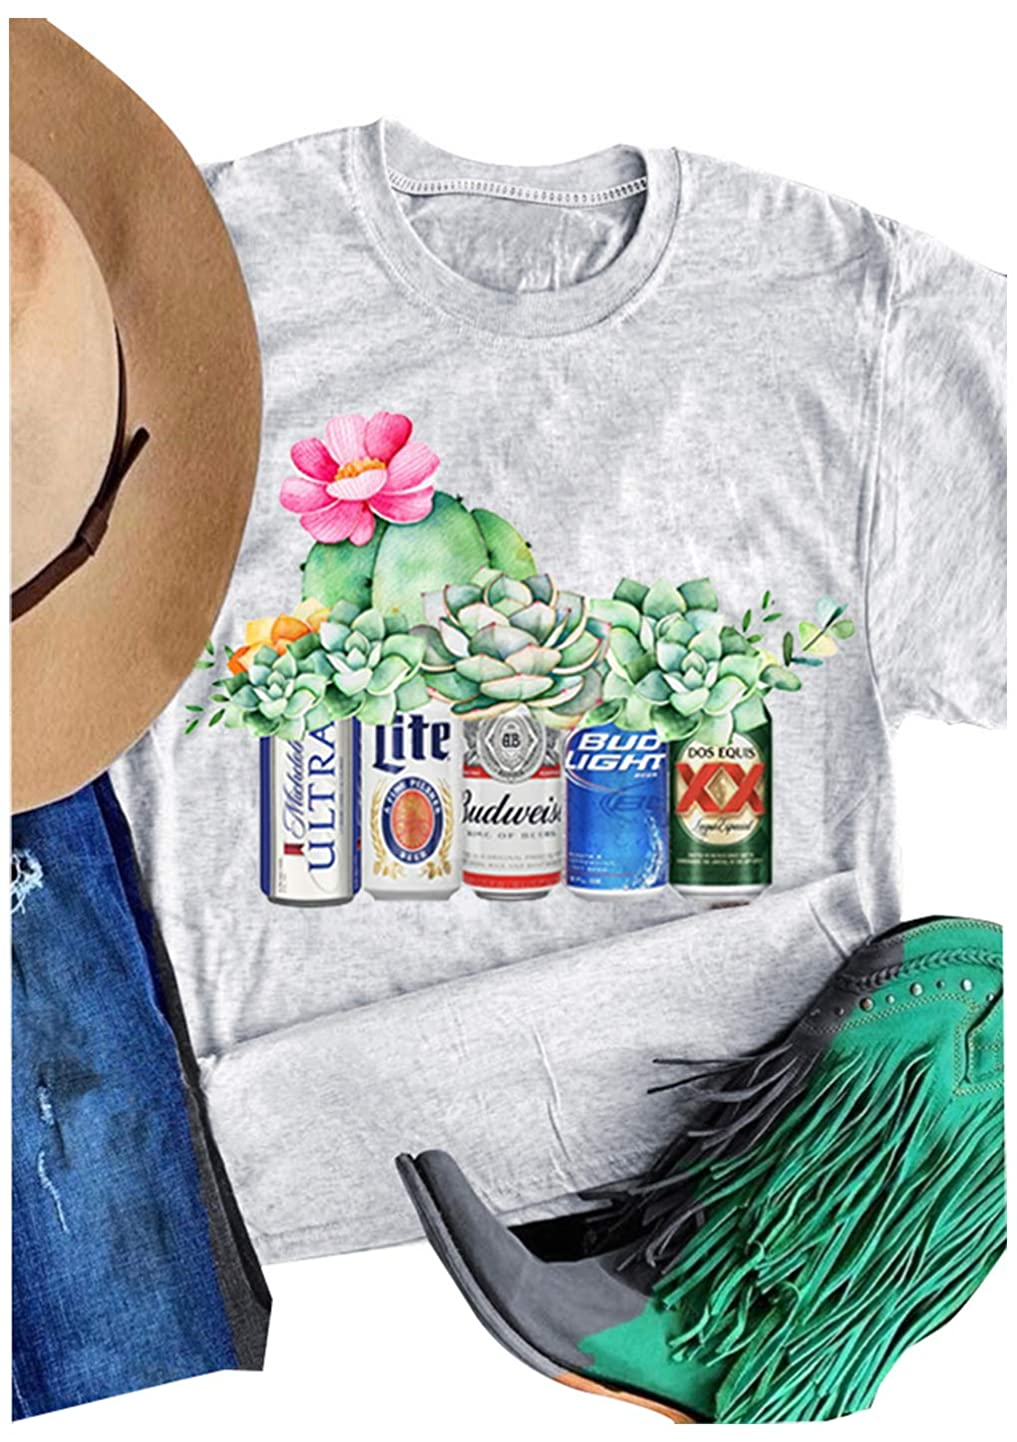 Women Bud Light and Flower Graphic T-Shirt Graphic Tee Short Sleeve Top lrmjjhtffbv2